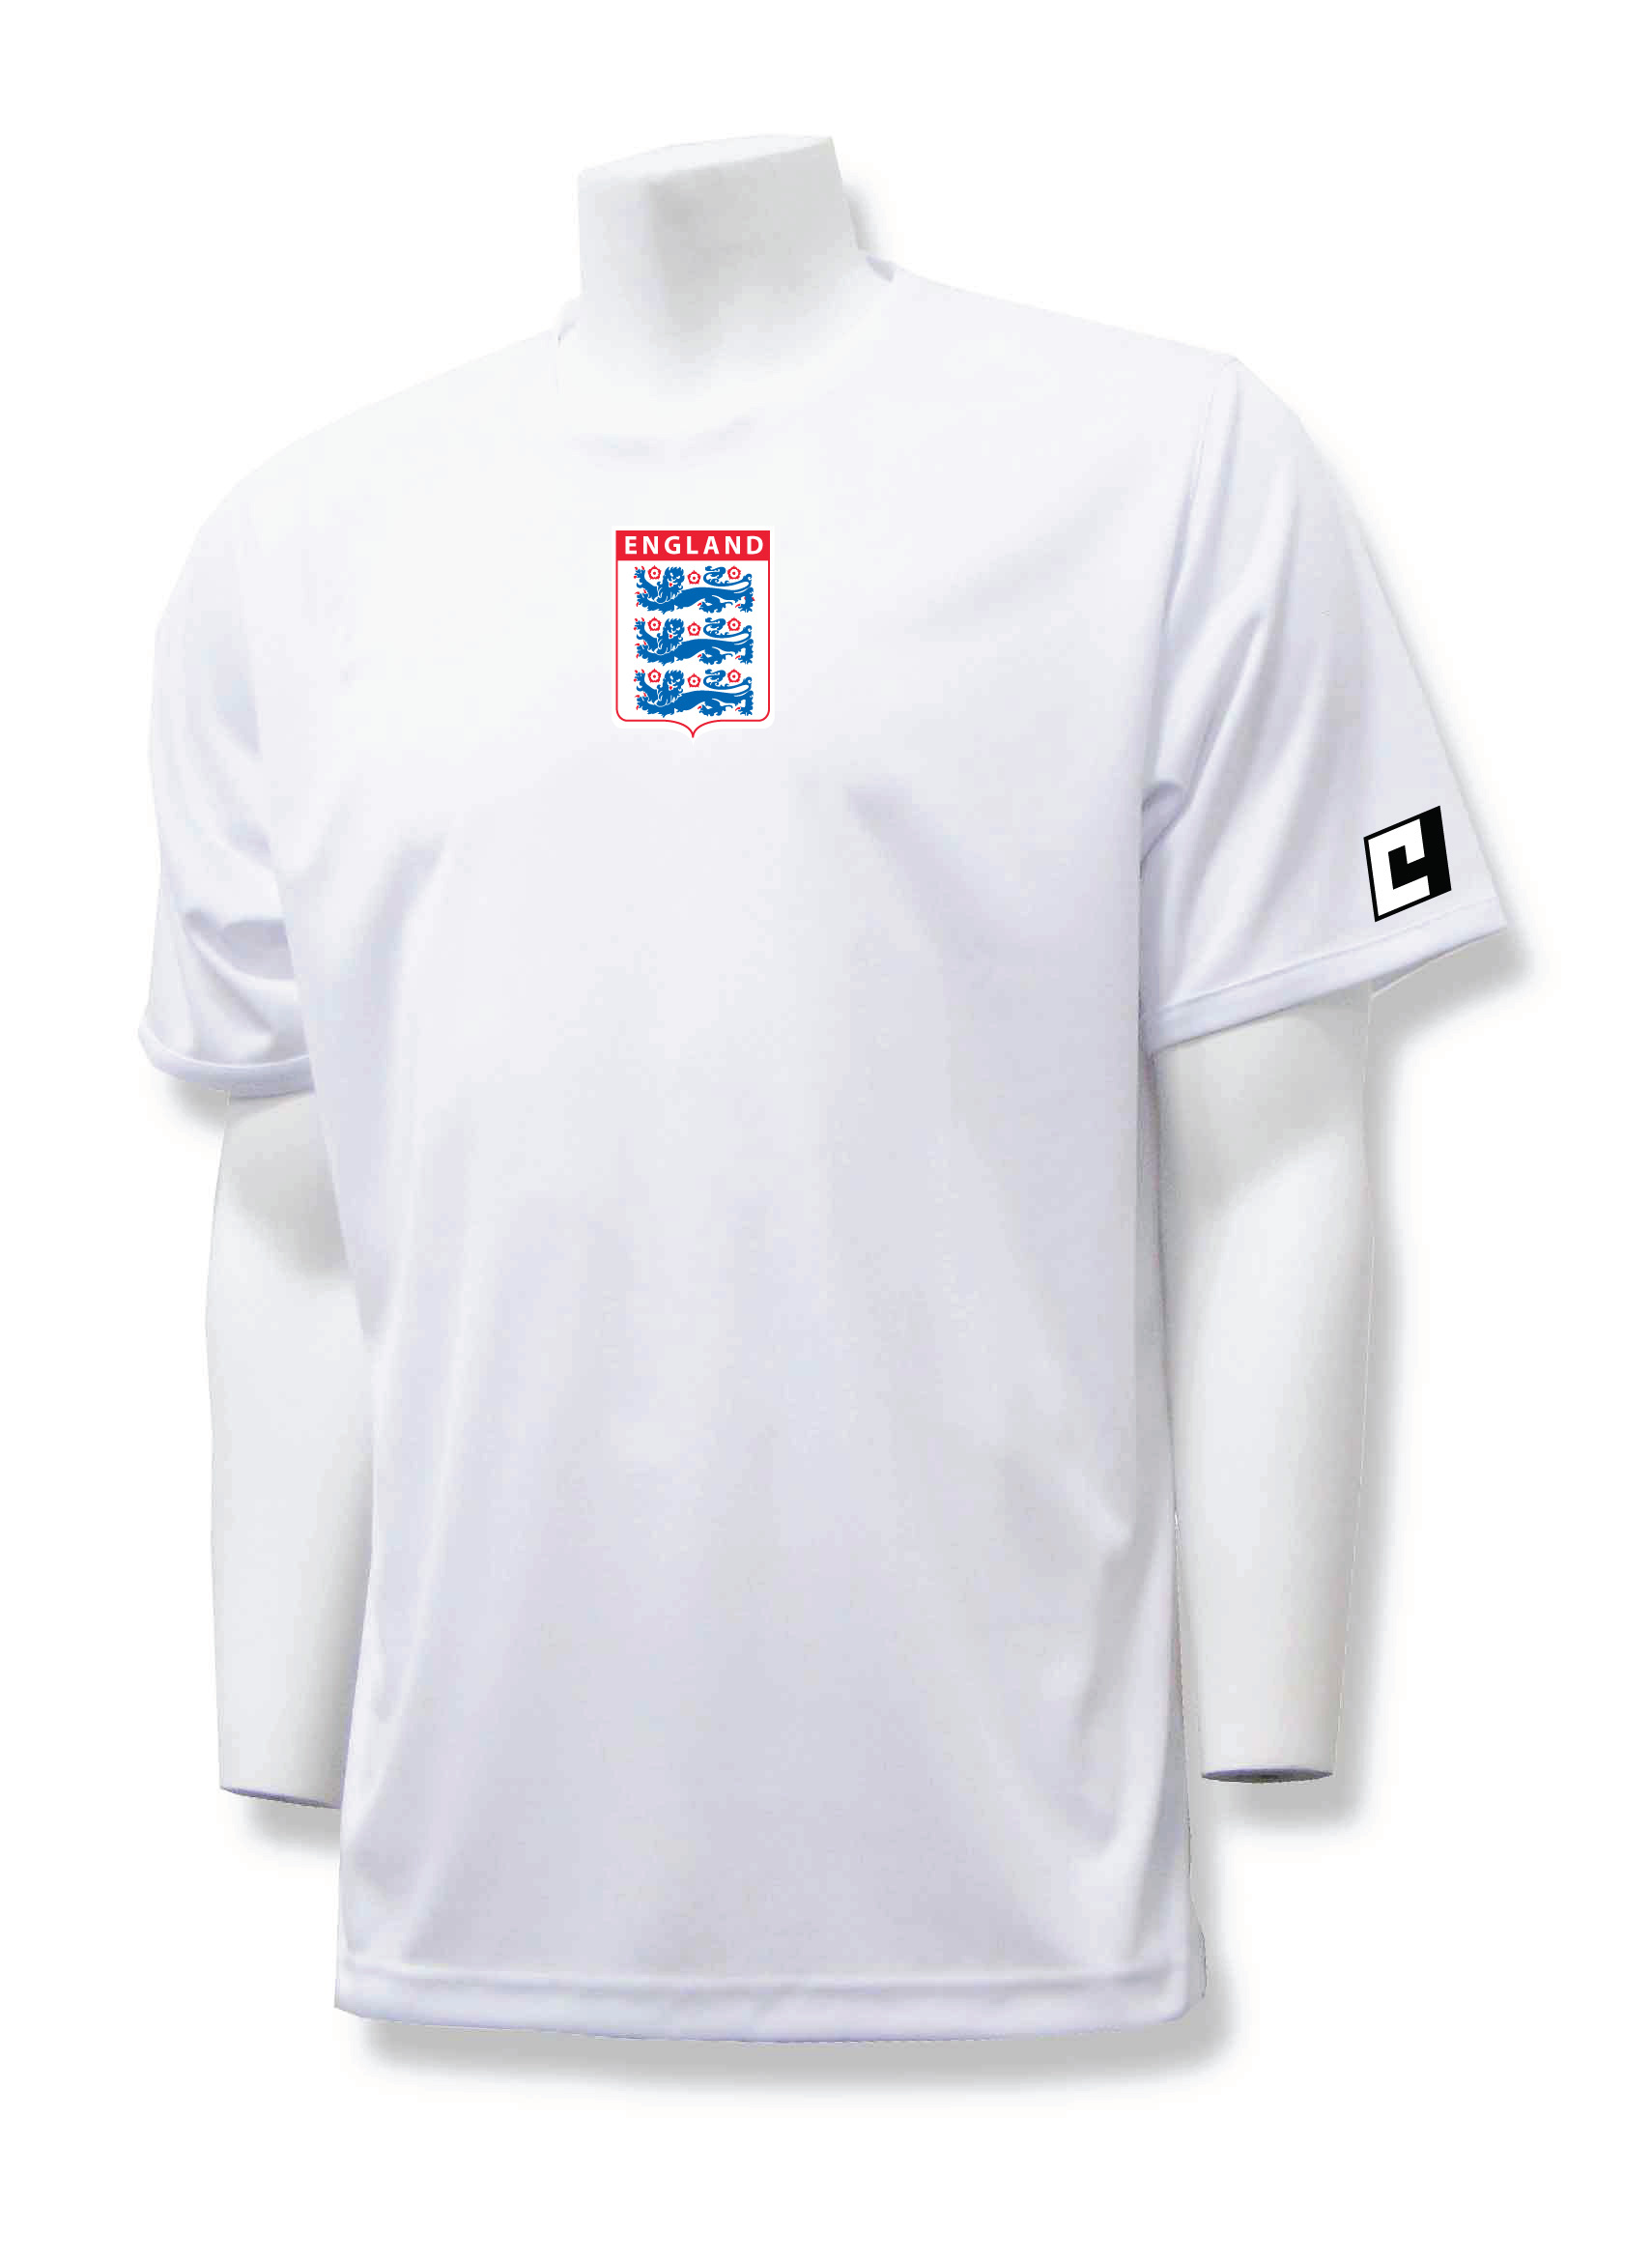 England workout top in white